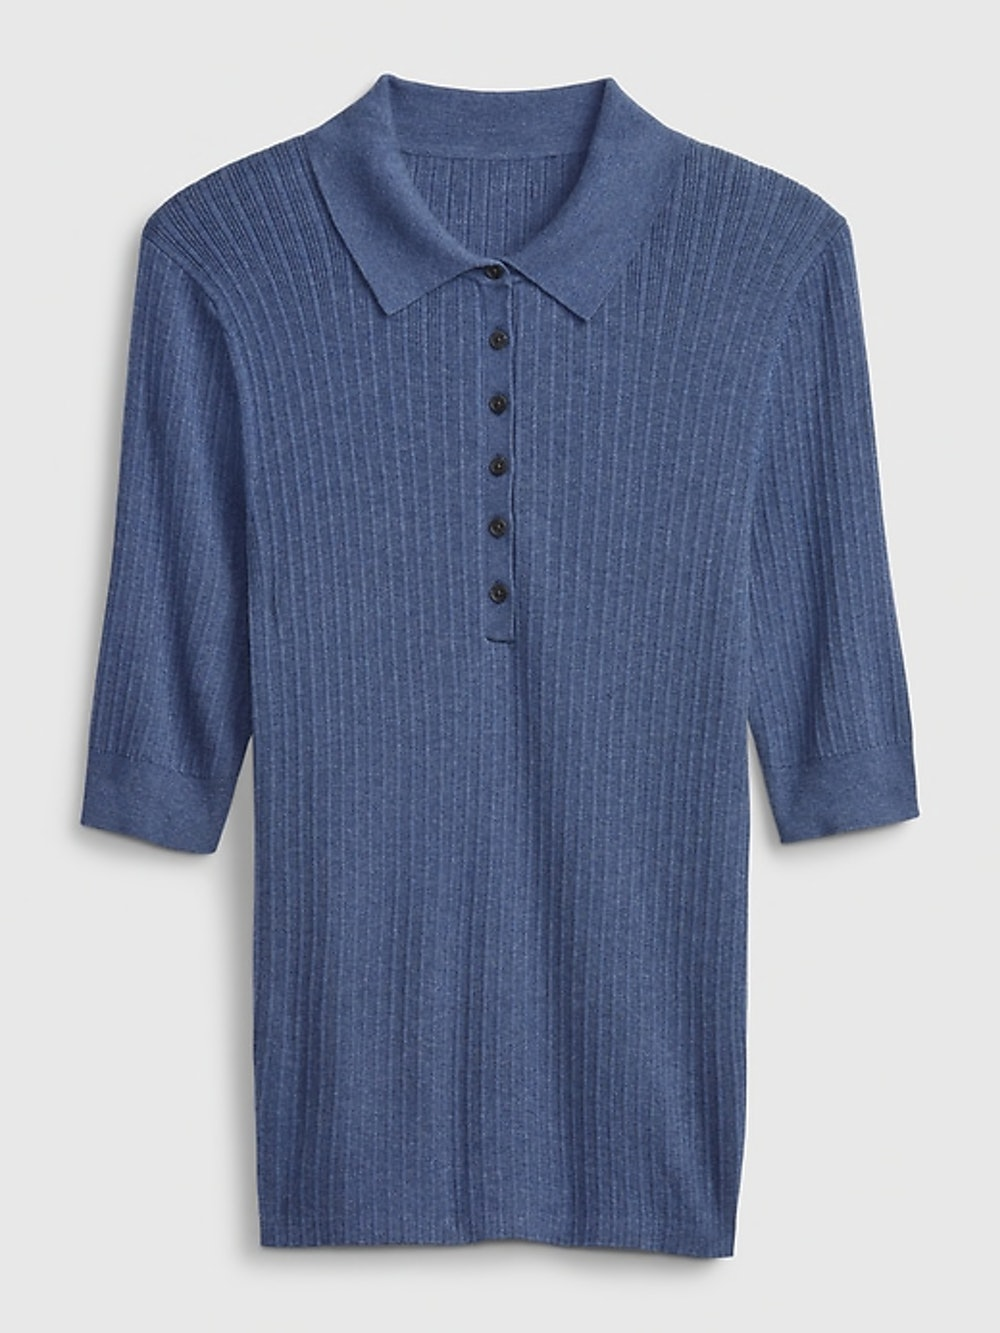 Ribbed Polo Sweater, $49.95 $24